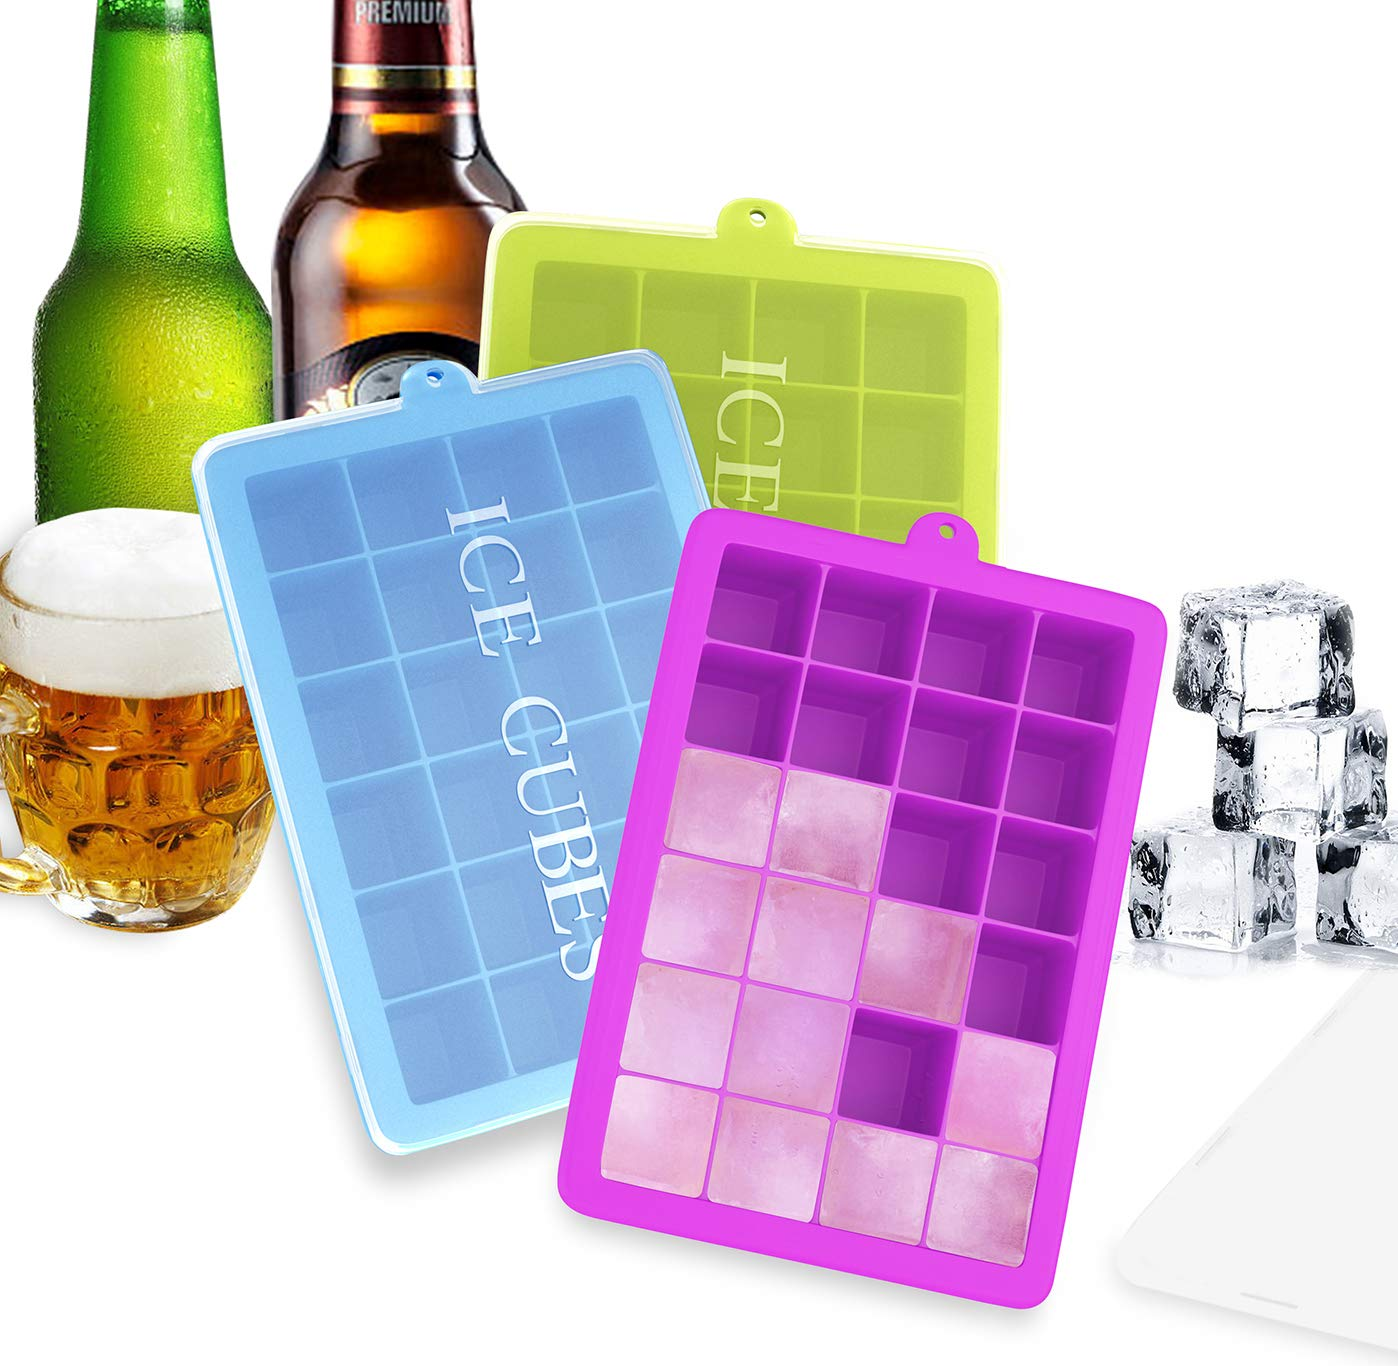 Ozera 3 Pack Silicone Ice Cube Molds, Ice Cube Trays with Lid, 1.06'' Small Easy Release Ice Tray 24 Cavities Square Ice Molds for Ice, Candy, Chocolate and More (Blue, Green, Purple) by Ozera